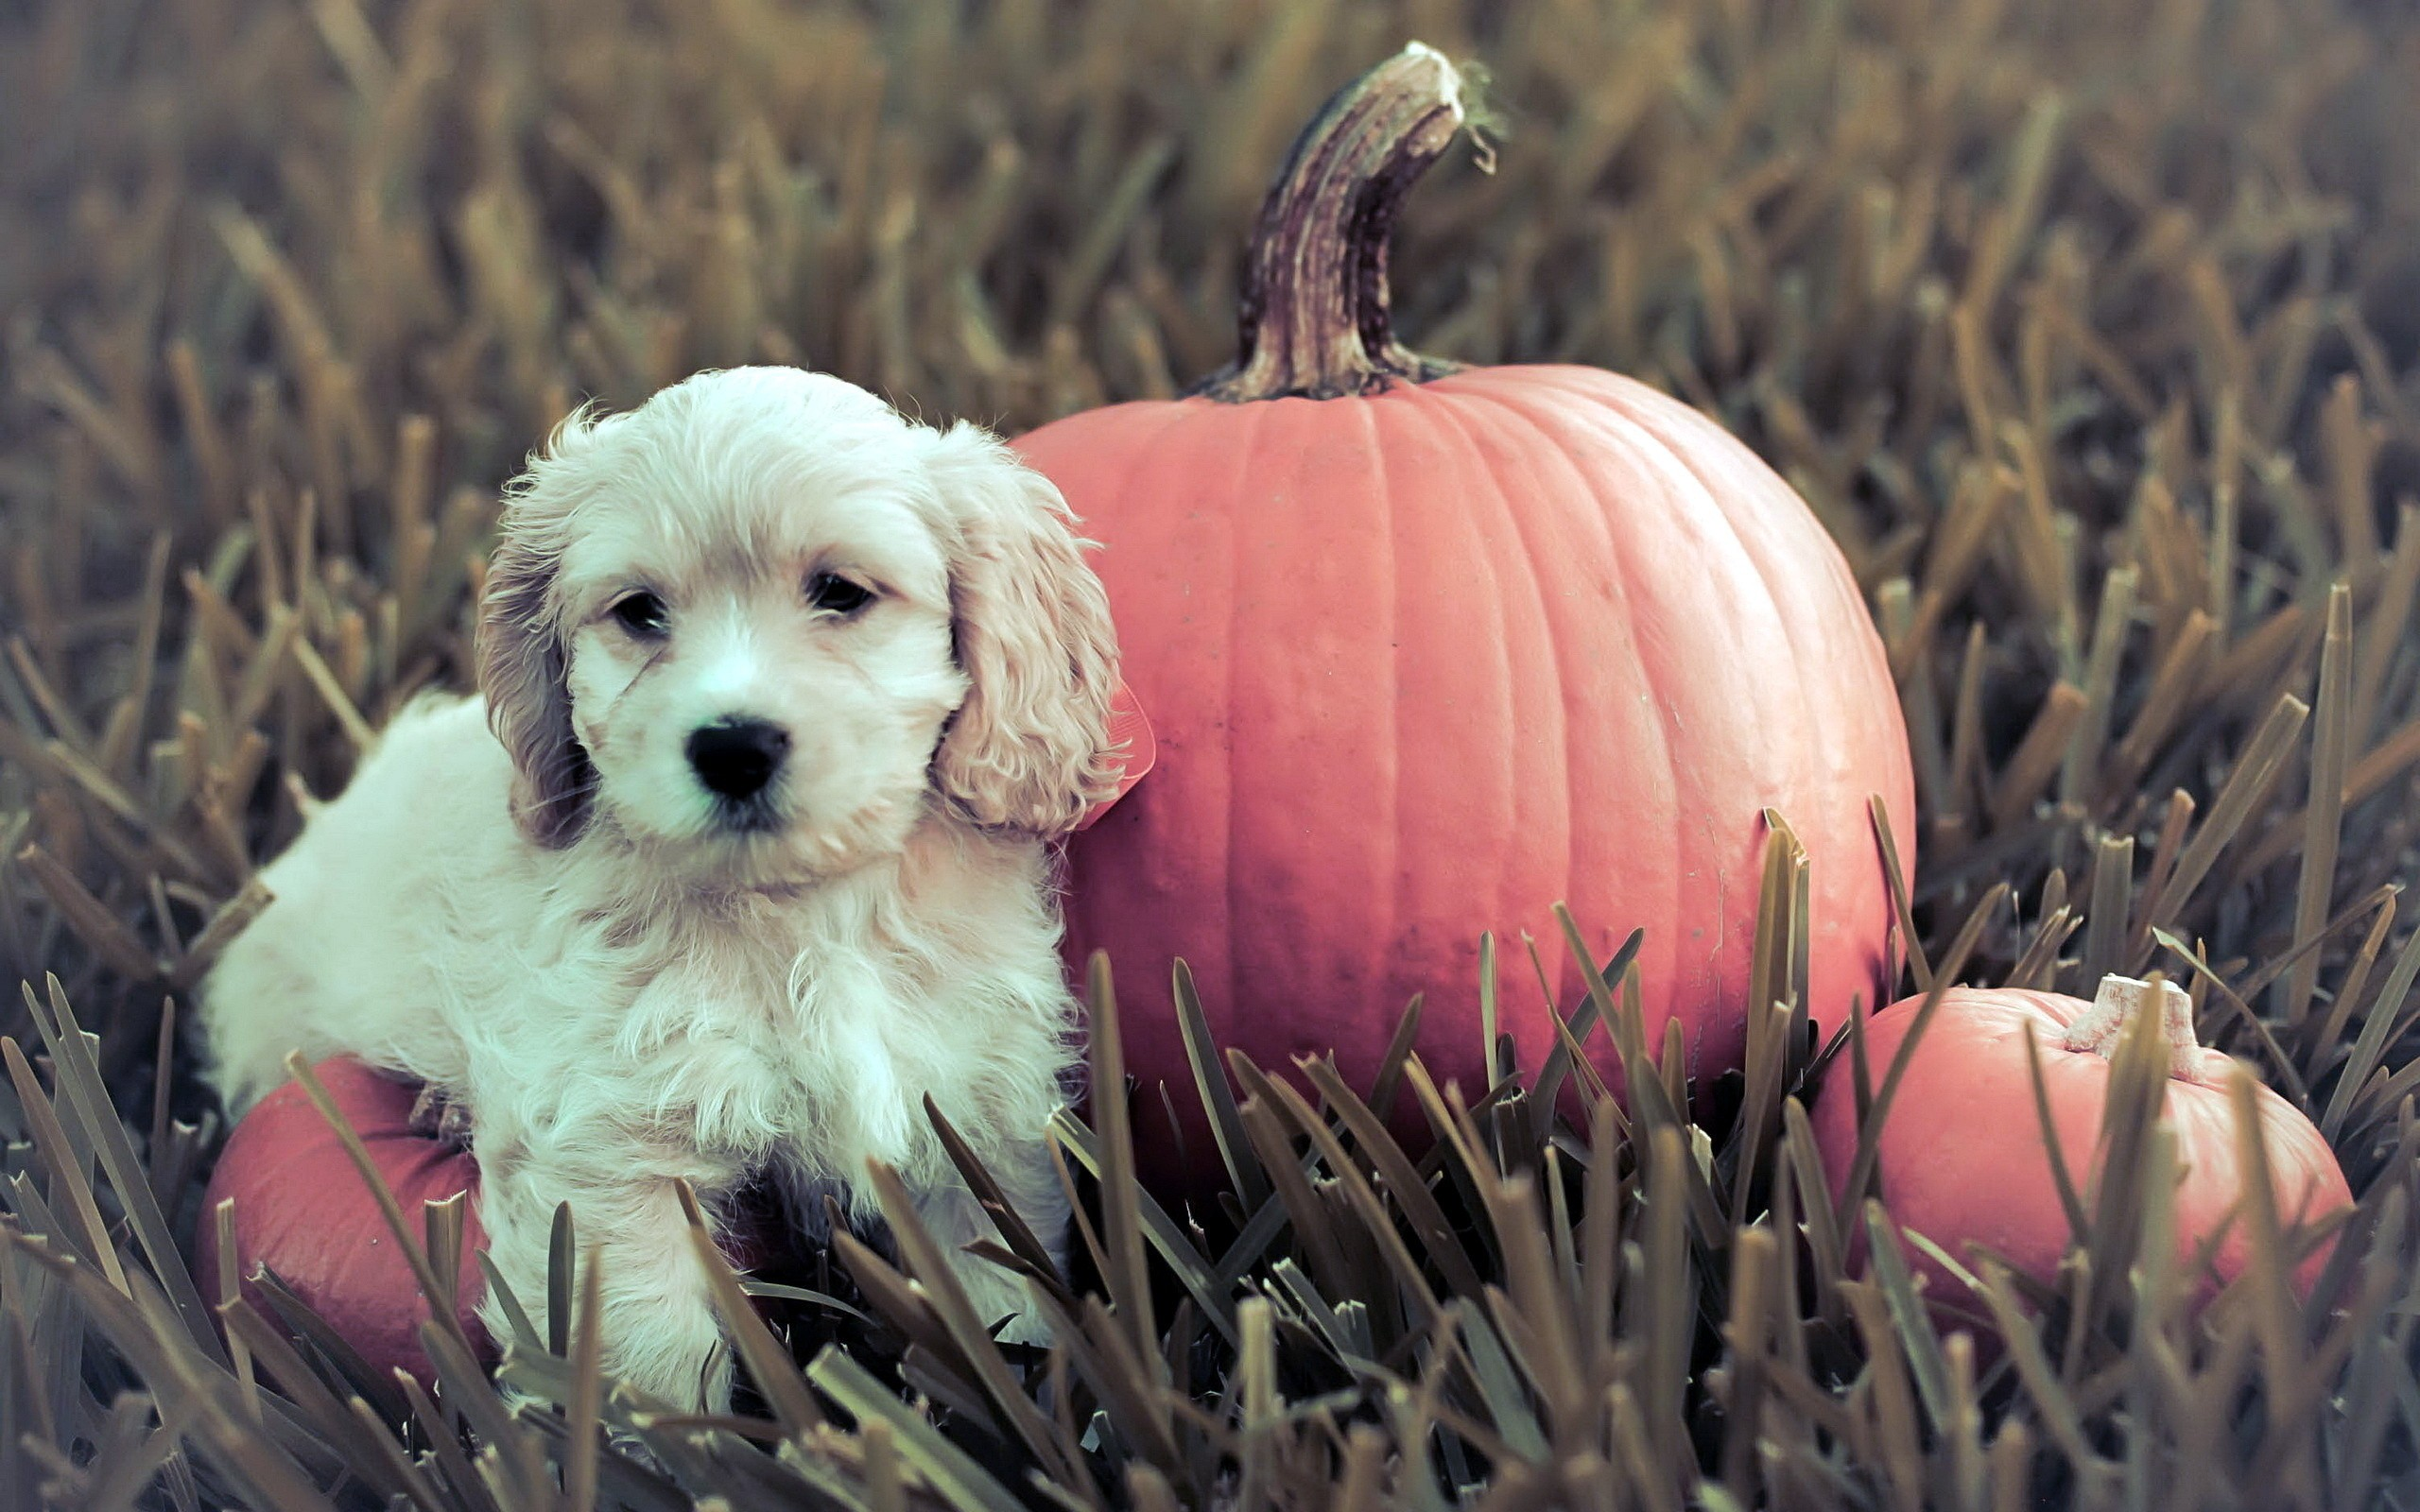 Fall Desktop Wallpaper With Pumpkins Dog With Pumpkin Wallpaper Allwallpaper In 10661 Pc En